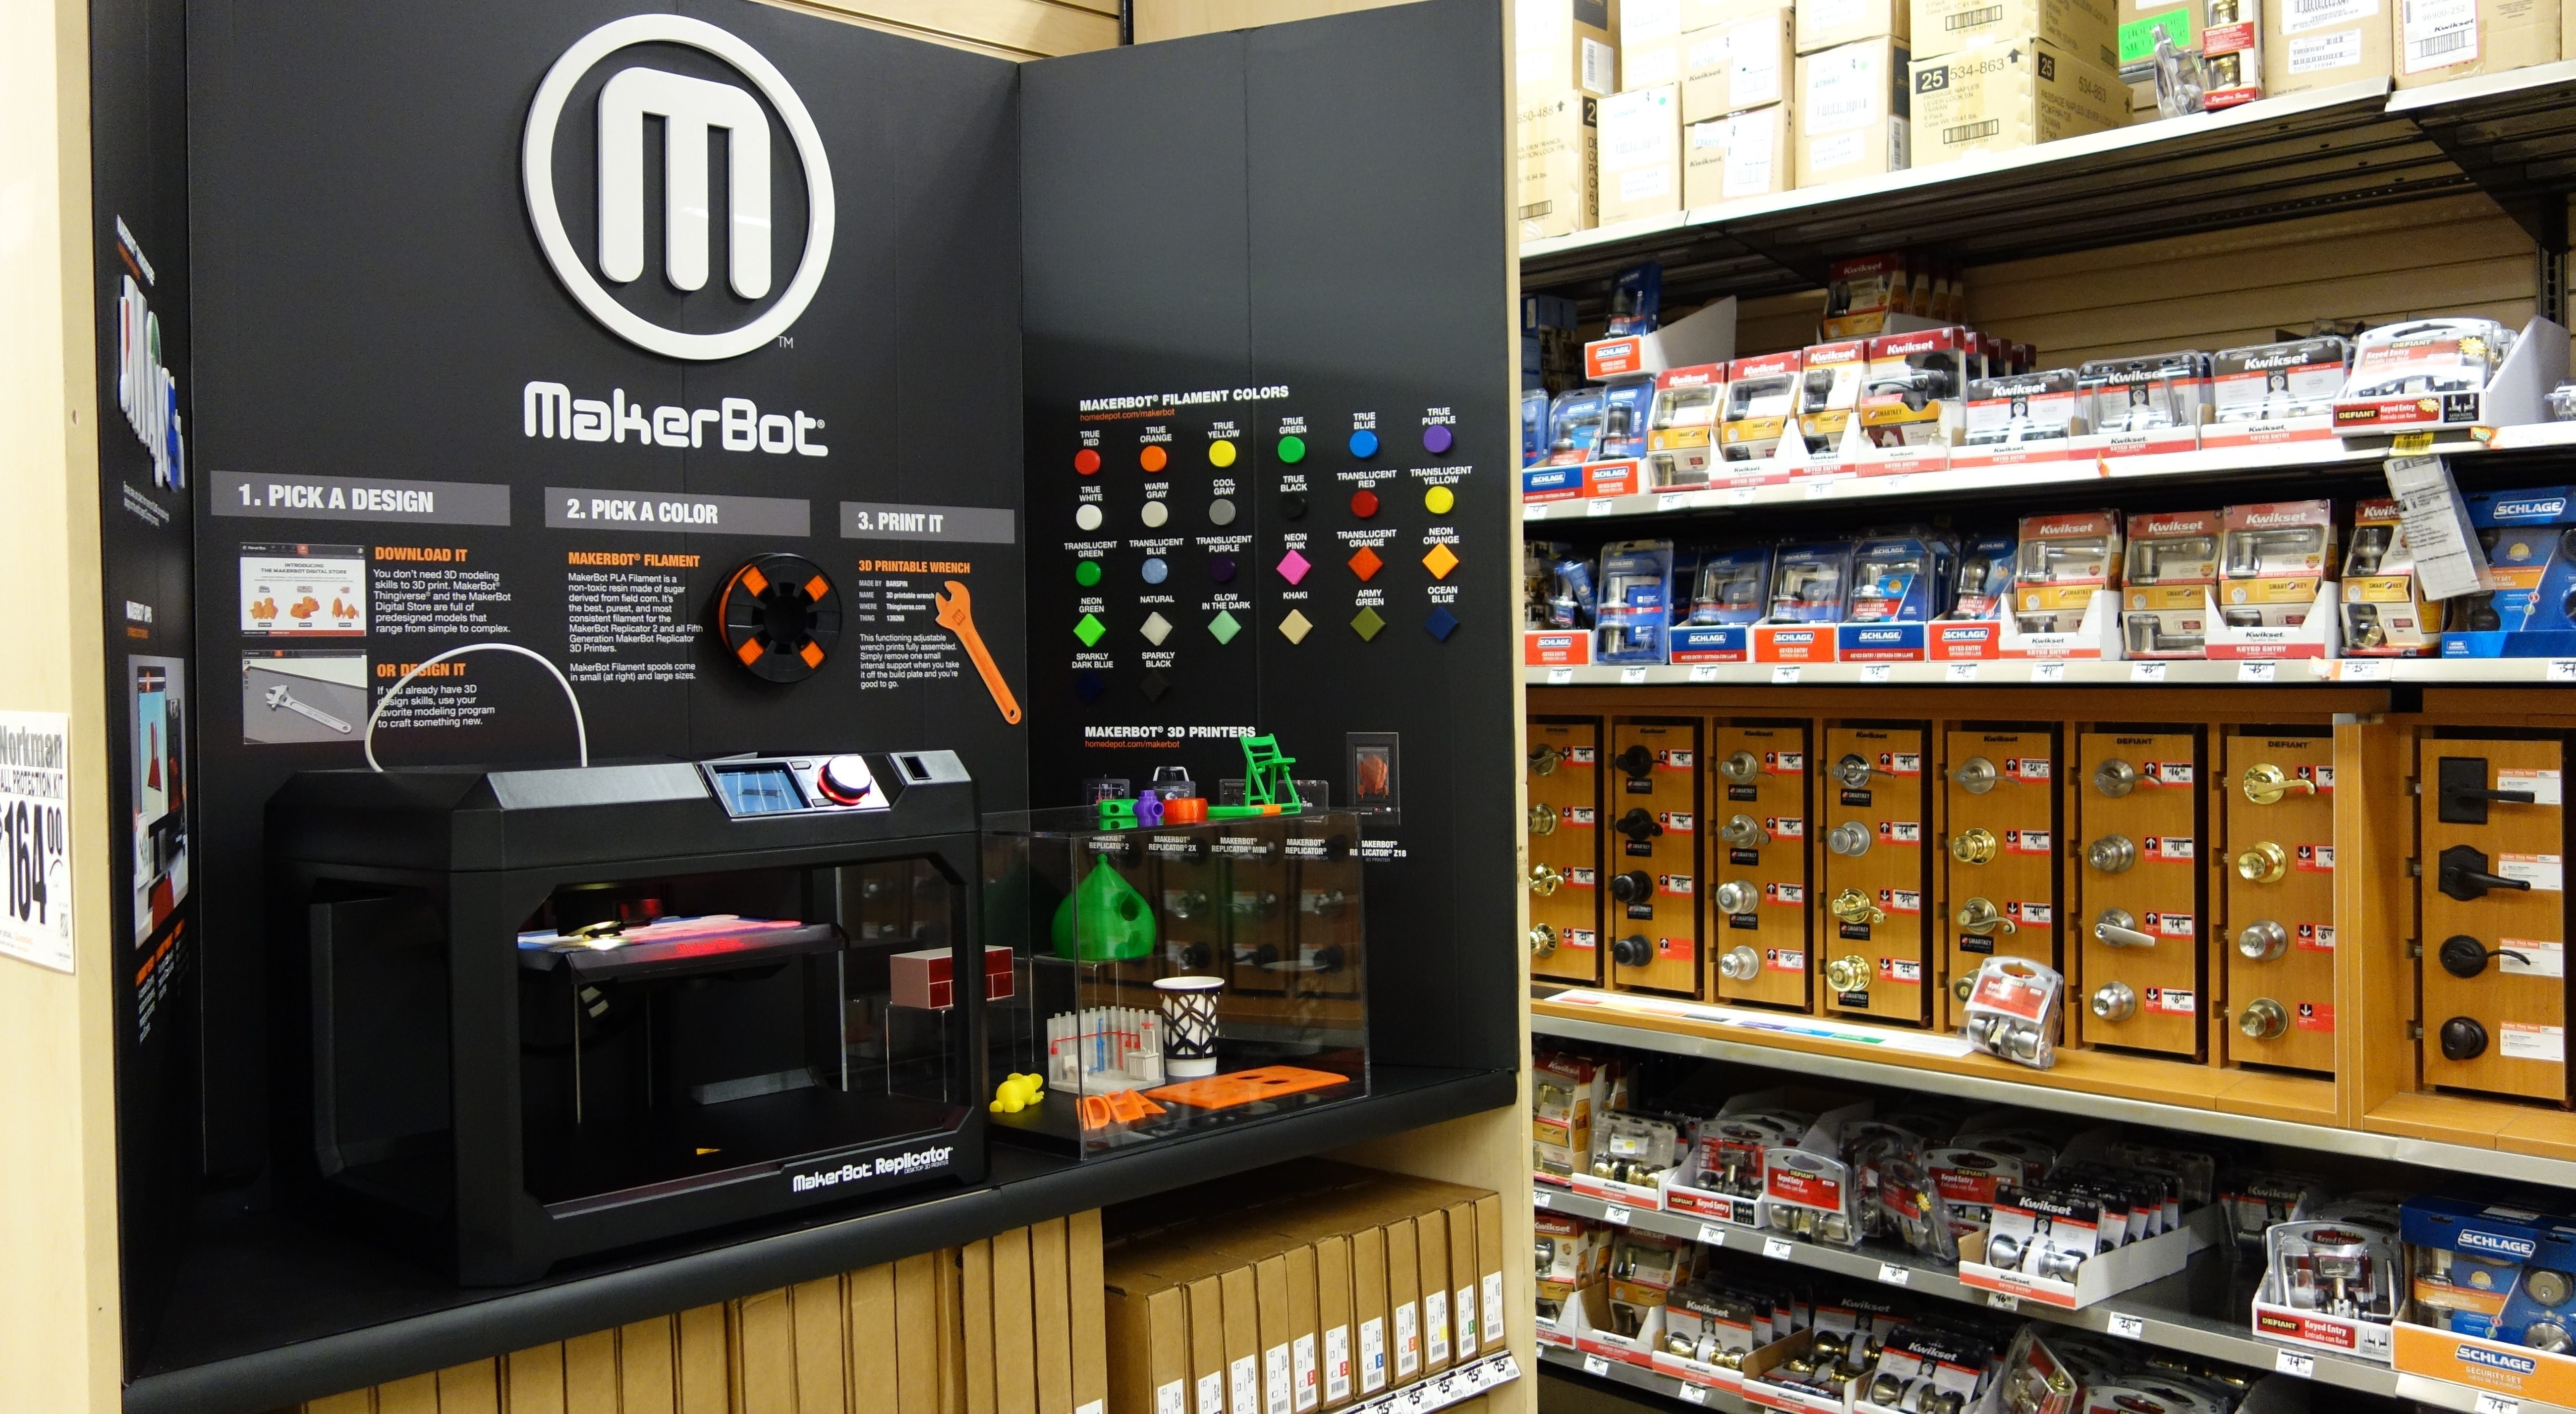 Makerbot And The Home Depot R Announce A Collaboration To Bring Makerbot R